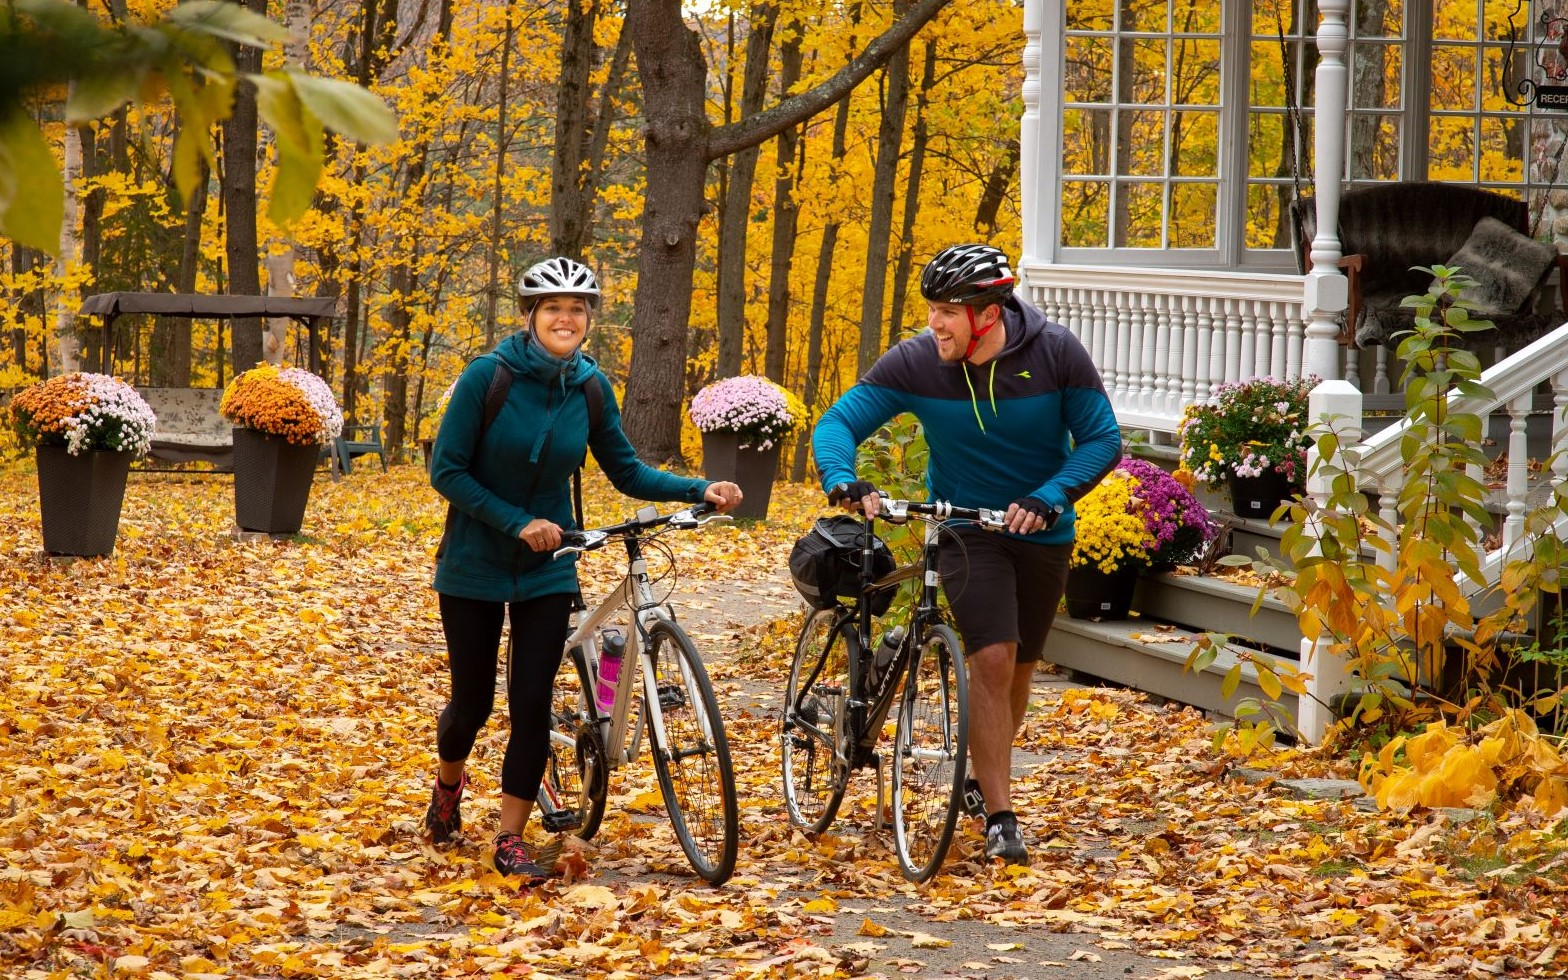 On an autumn day, two cyclists walk their bikes in front of an inn along the P'tit du Nord bike trail